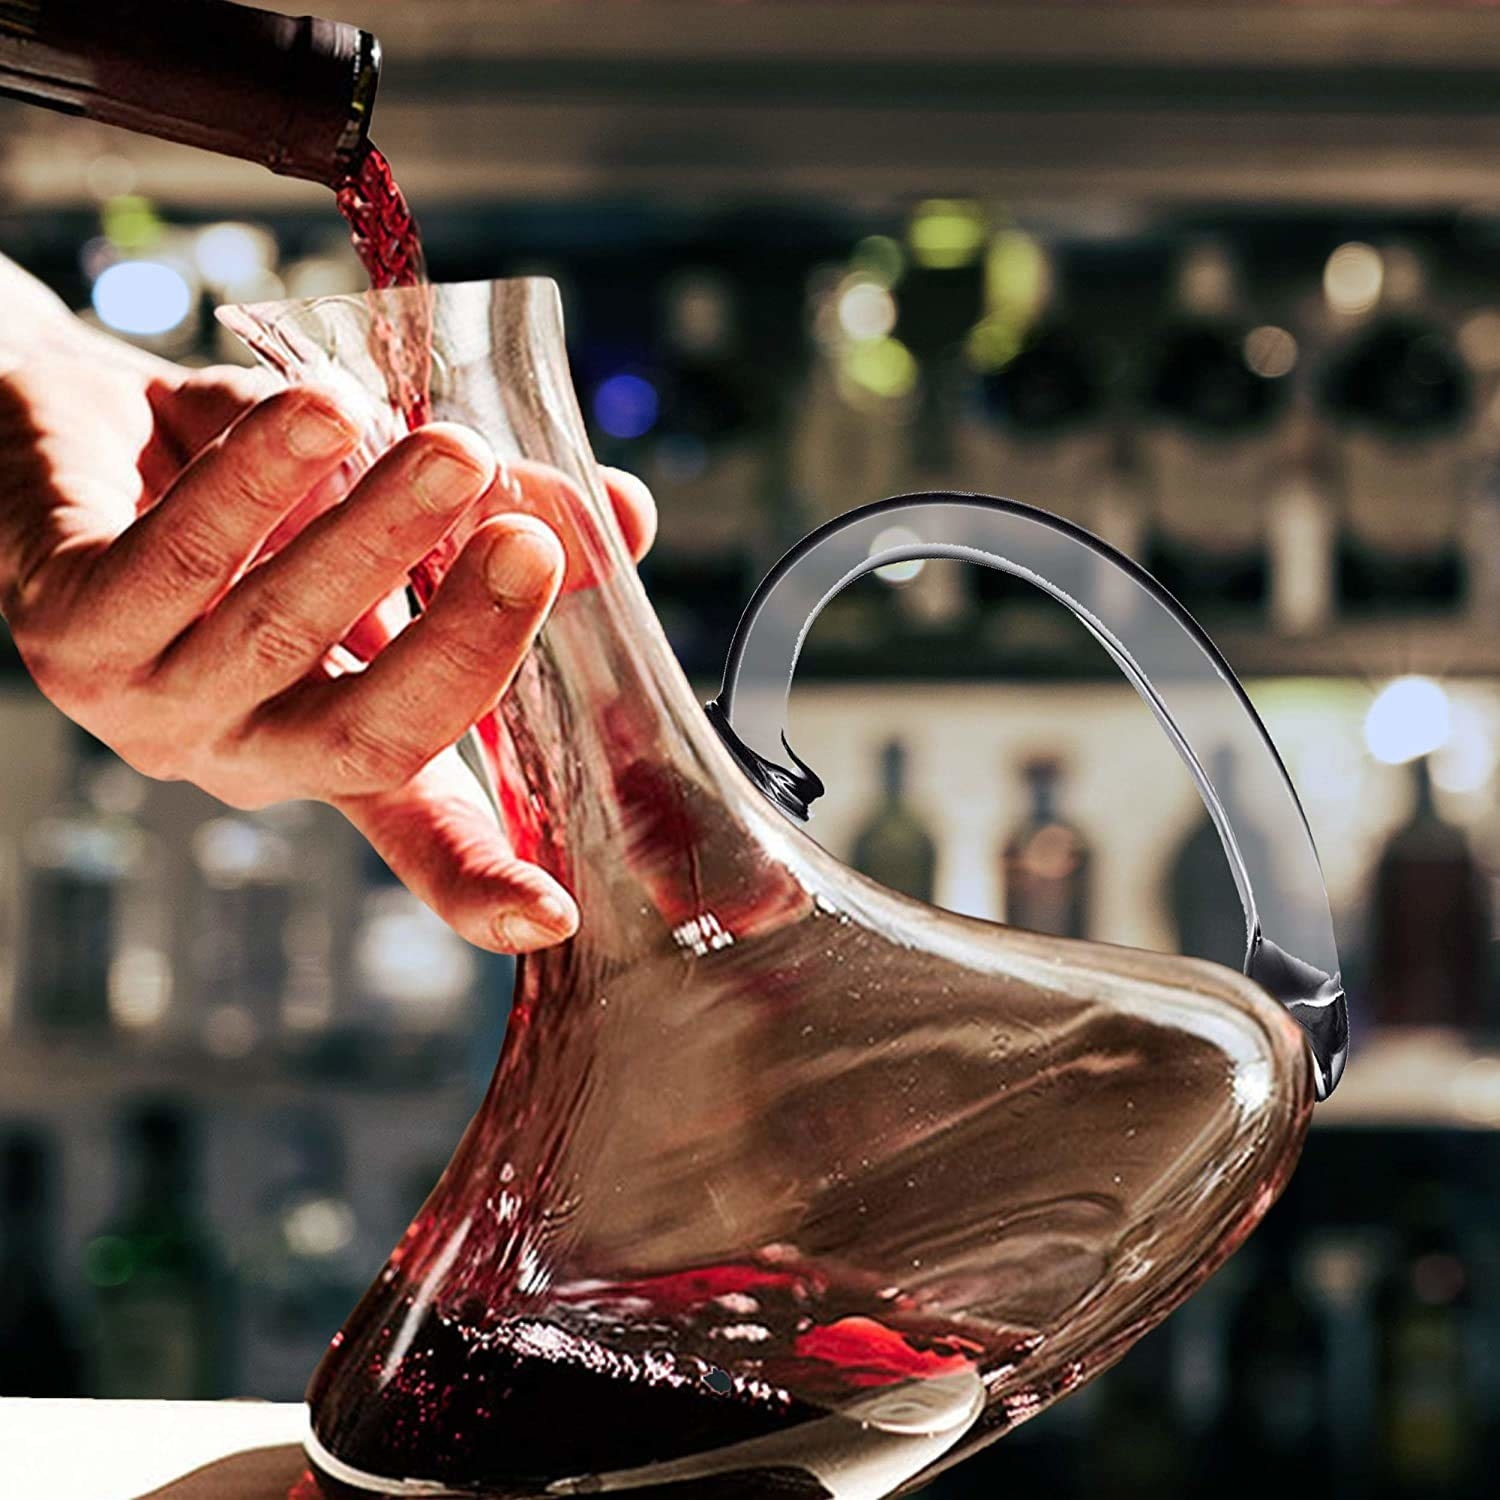 A person pouring a drink in the decanter.